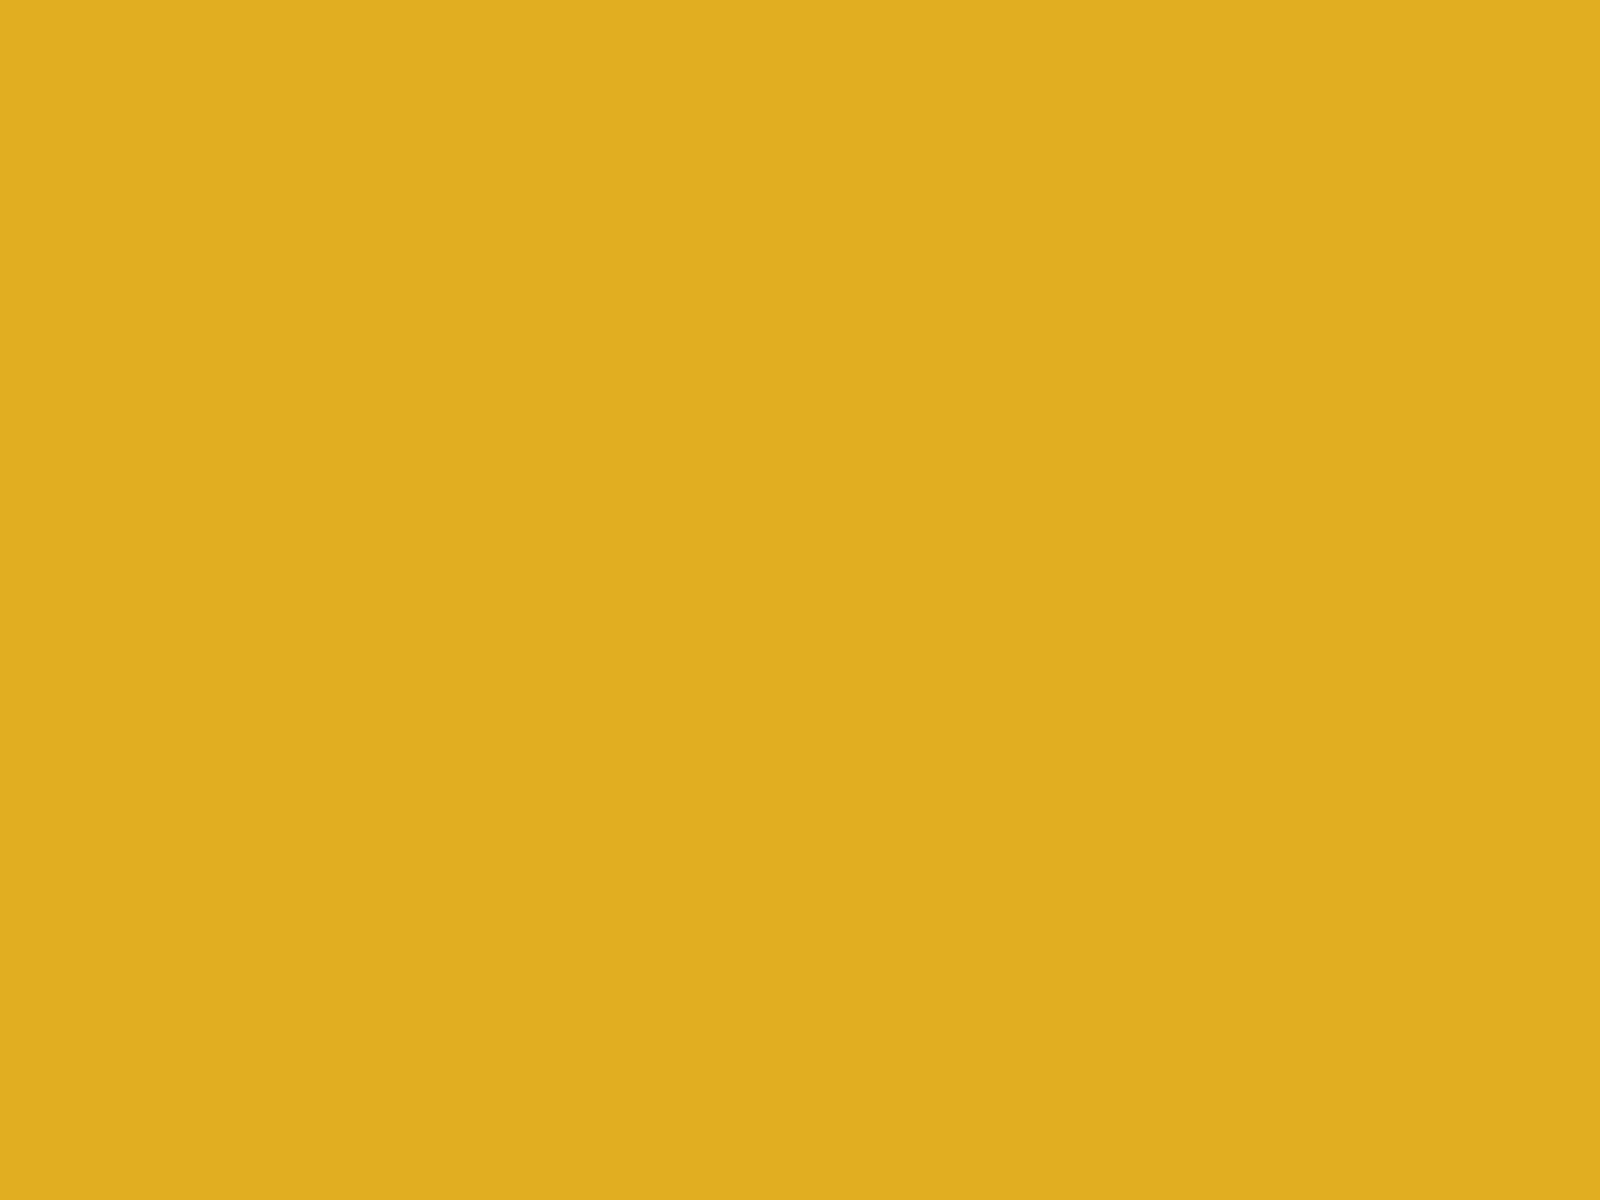 1600x1200 Urobilin Solid Color Background